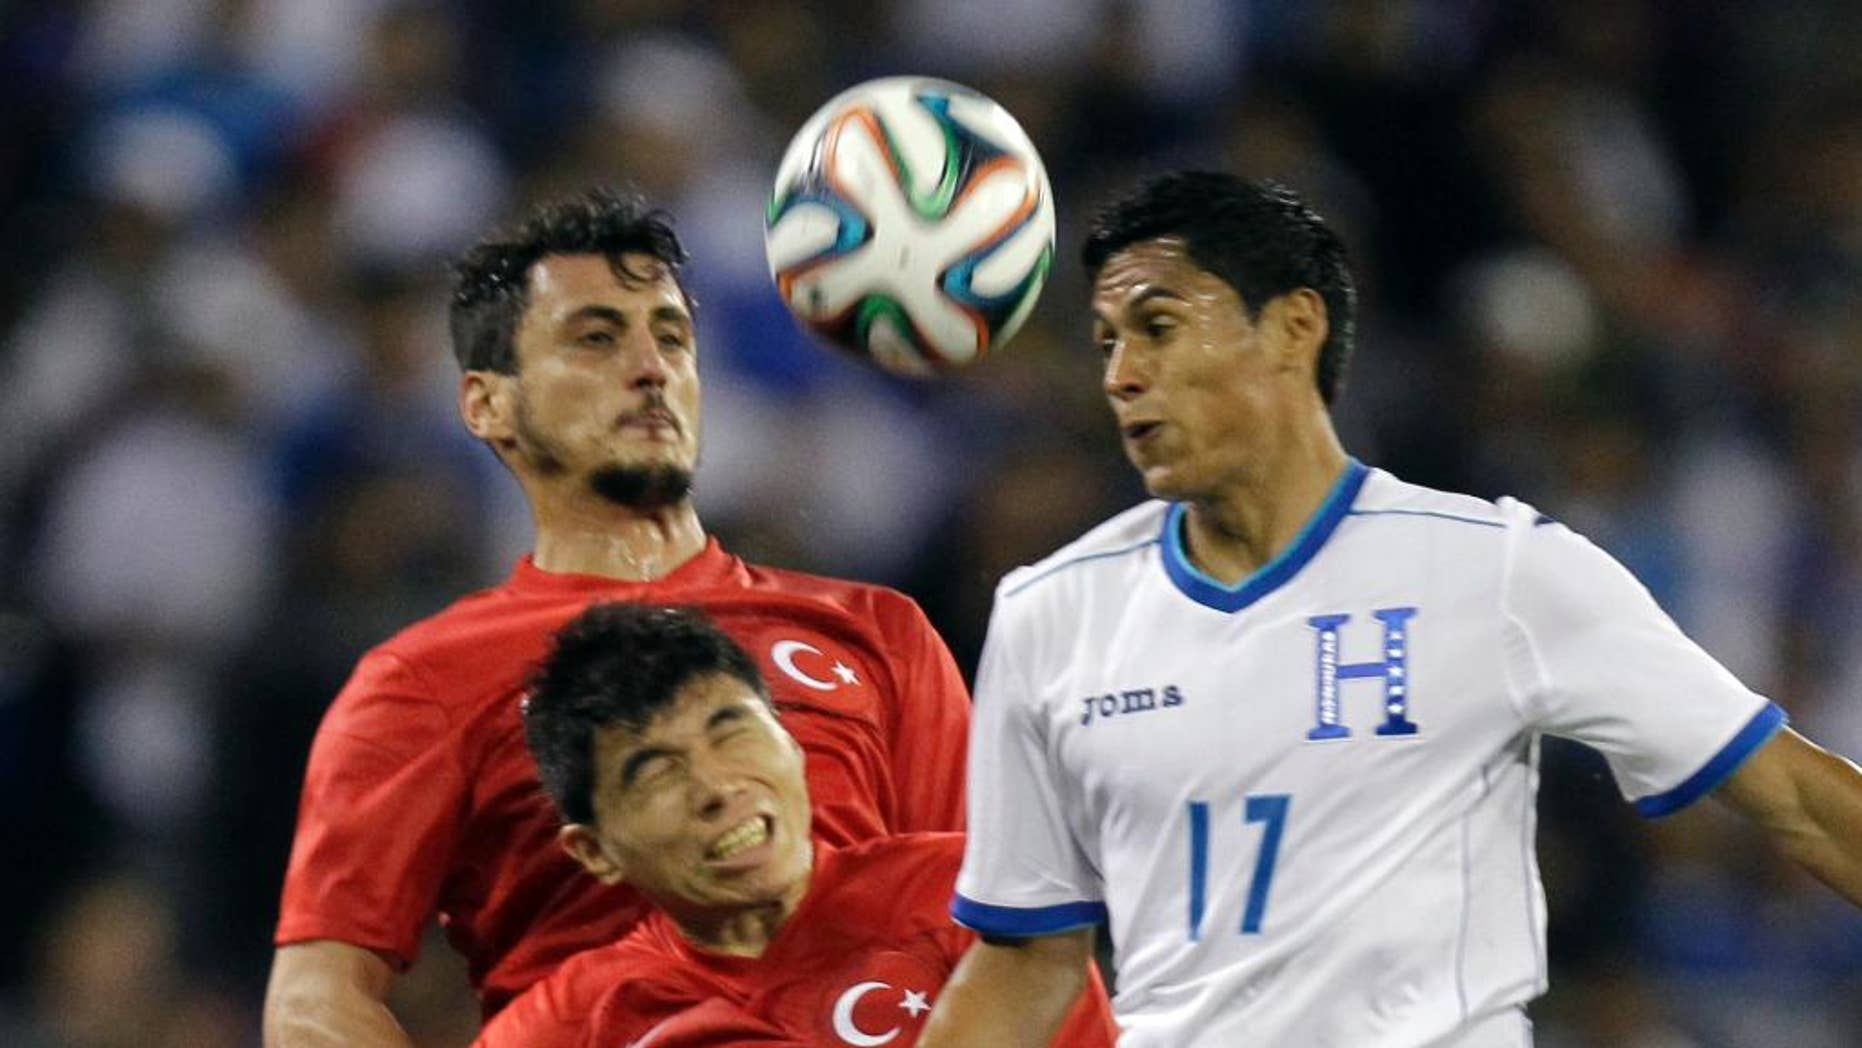 Turkey's Mustafa Pektemek, background, and Ishak Dogan (3) go up for the ball as Honduras' Andy Najar (17) defends during the first half of an exhibition soccer game, Thursday, May 29, 2014, in Washington. (AP Photo/Luis M. Alvarez)